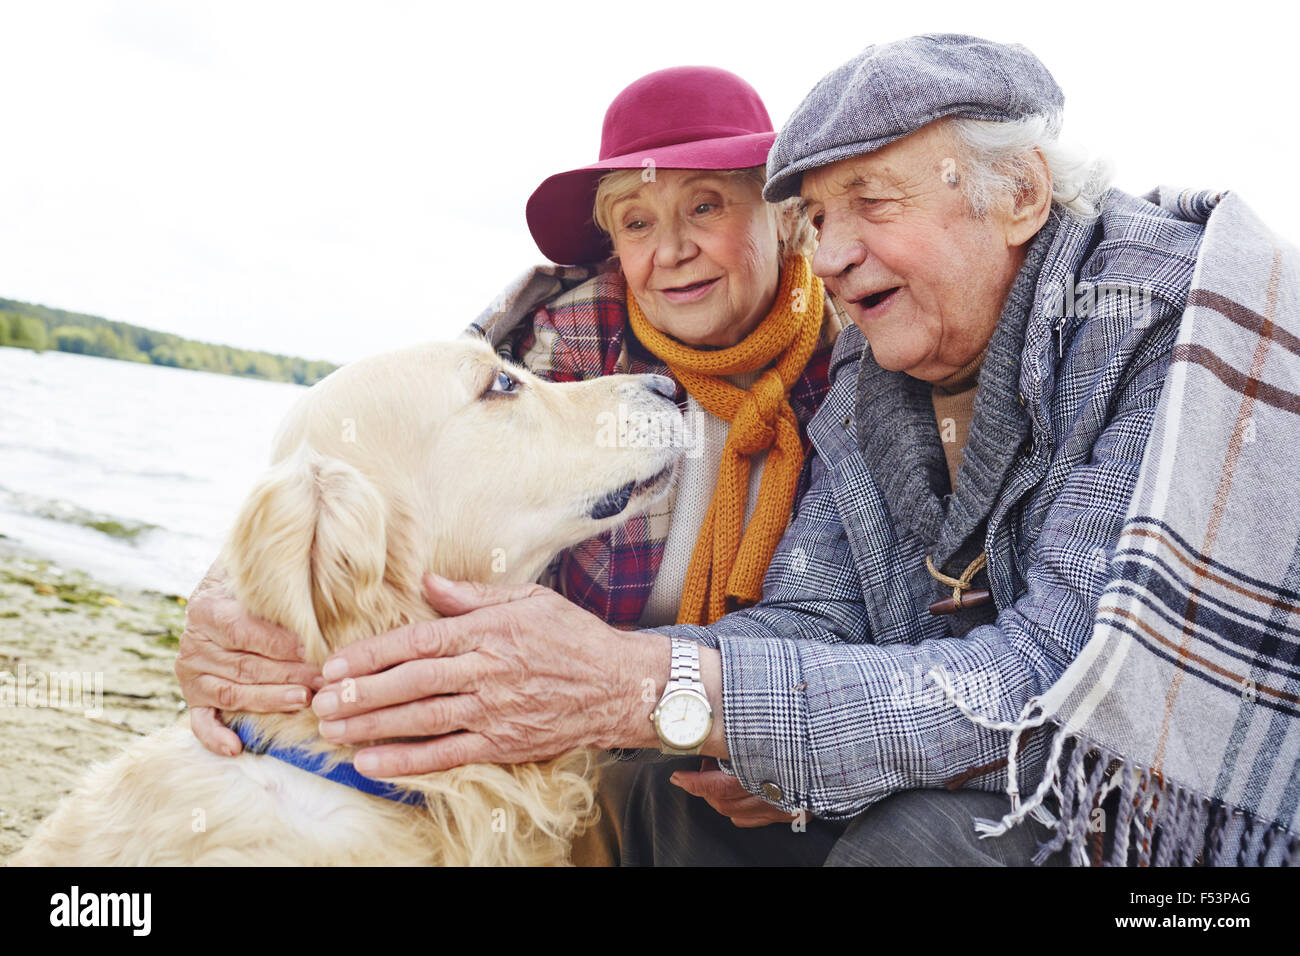 Seniors looking at retriever with pride and love - Stock Image